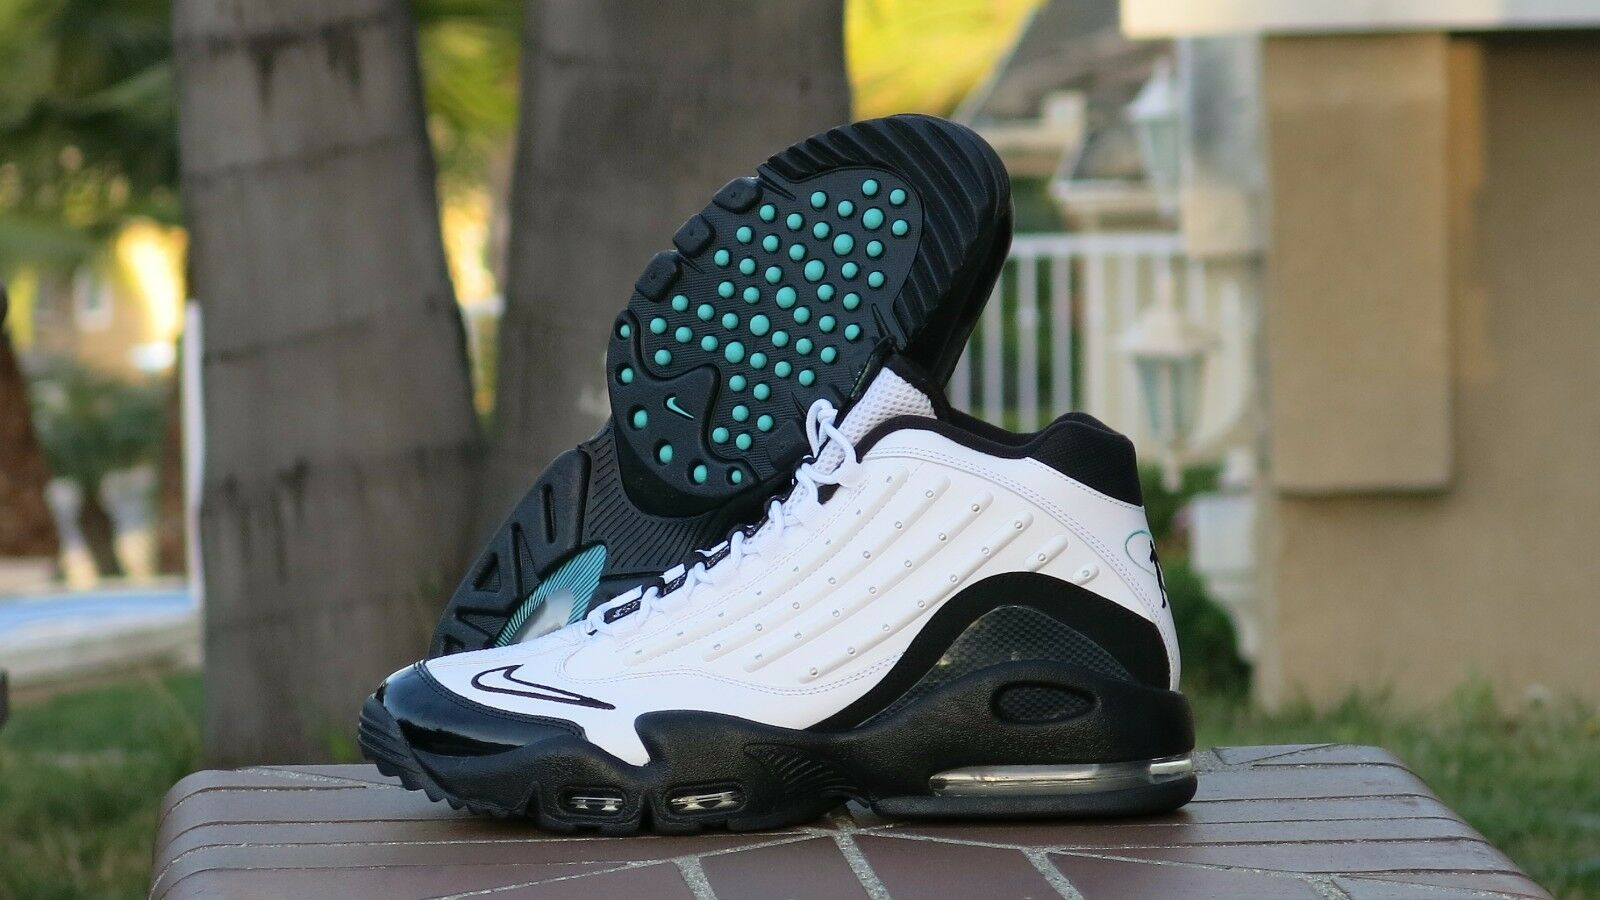 Nike Air Griffey Max II Men's Athletic Sneakers 442171-101 Price reduction The latest discount shoes for men and women